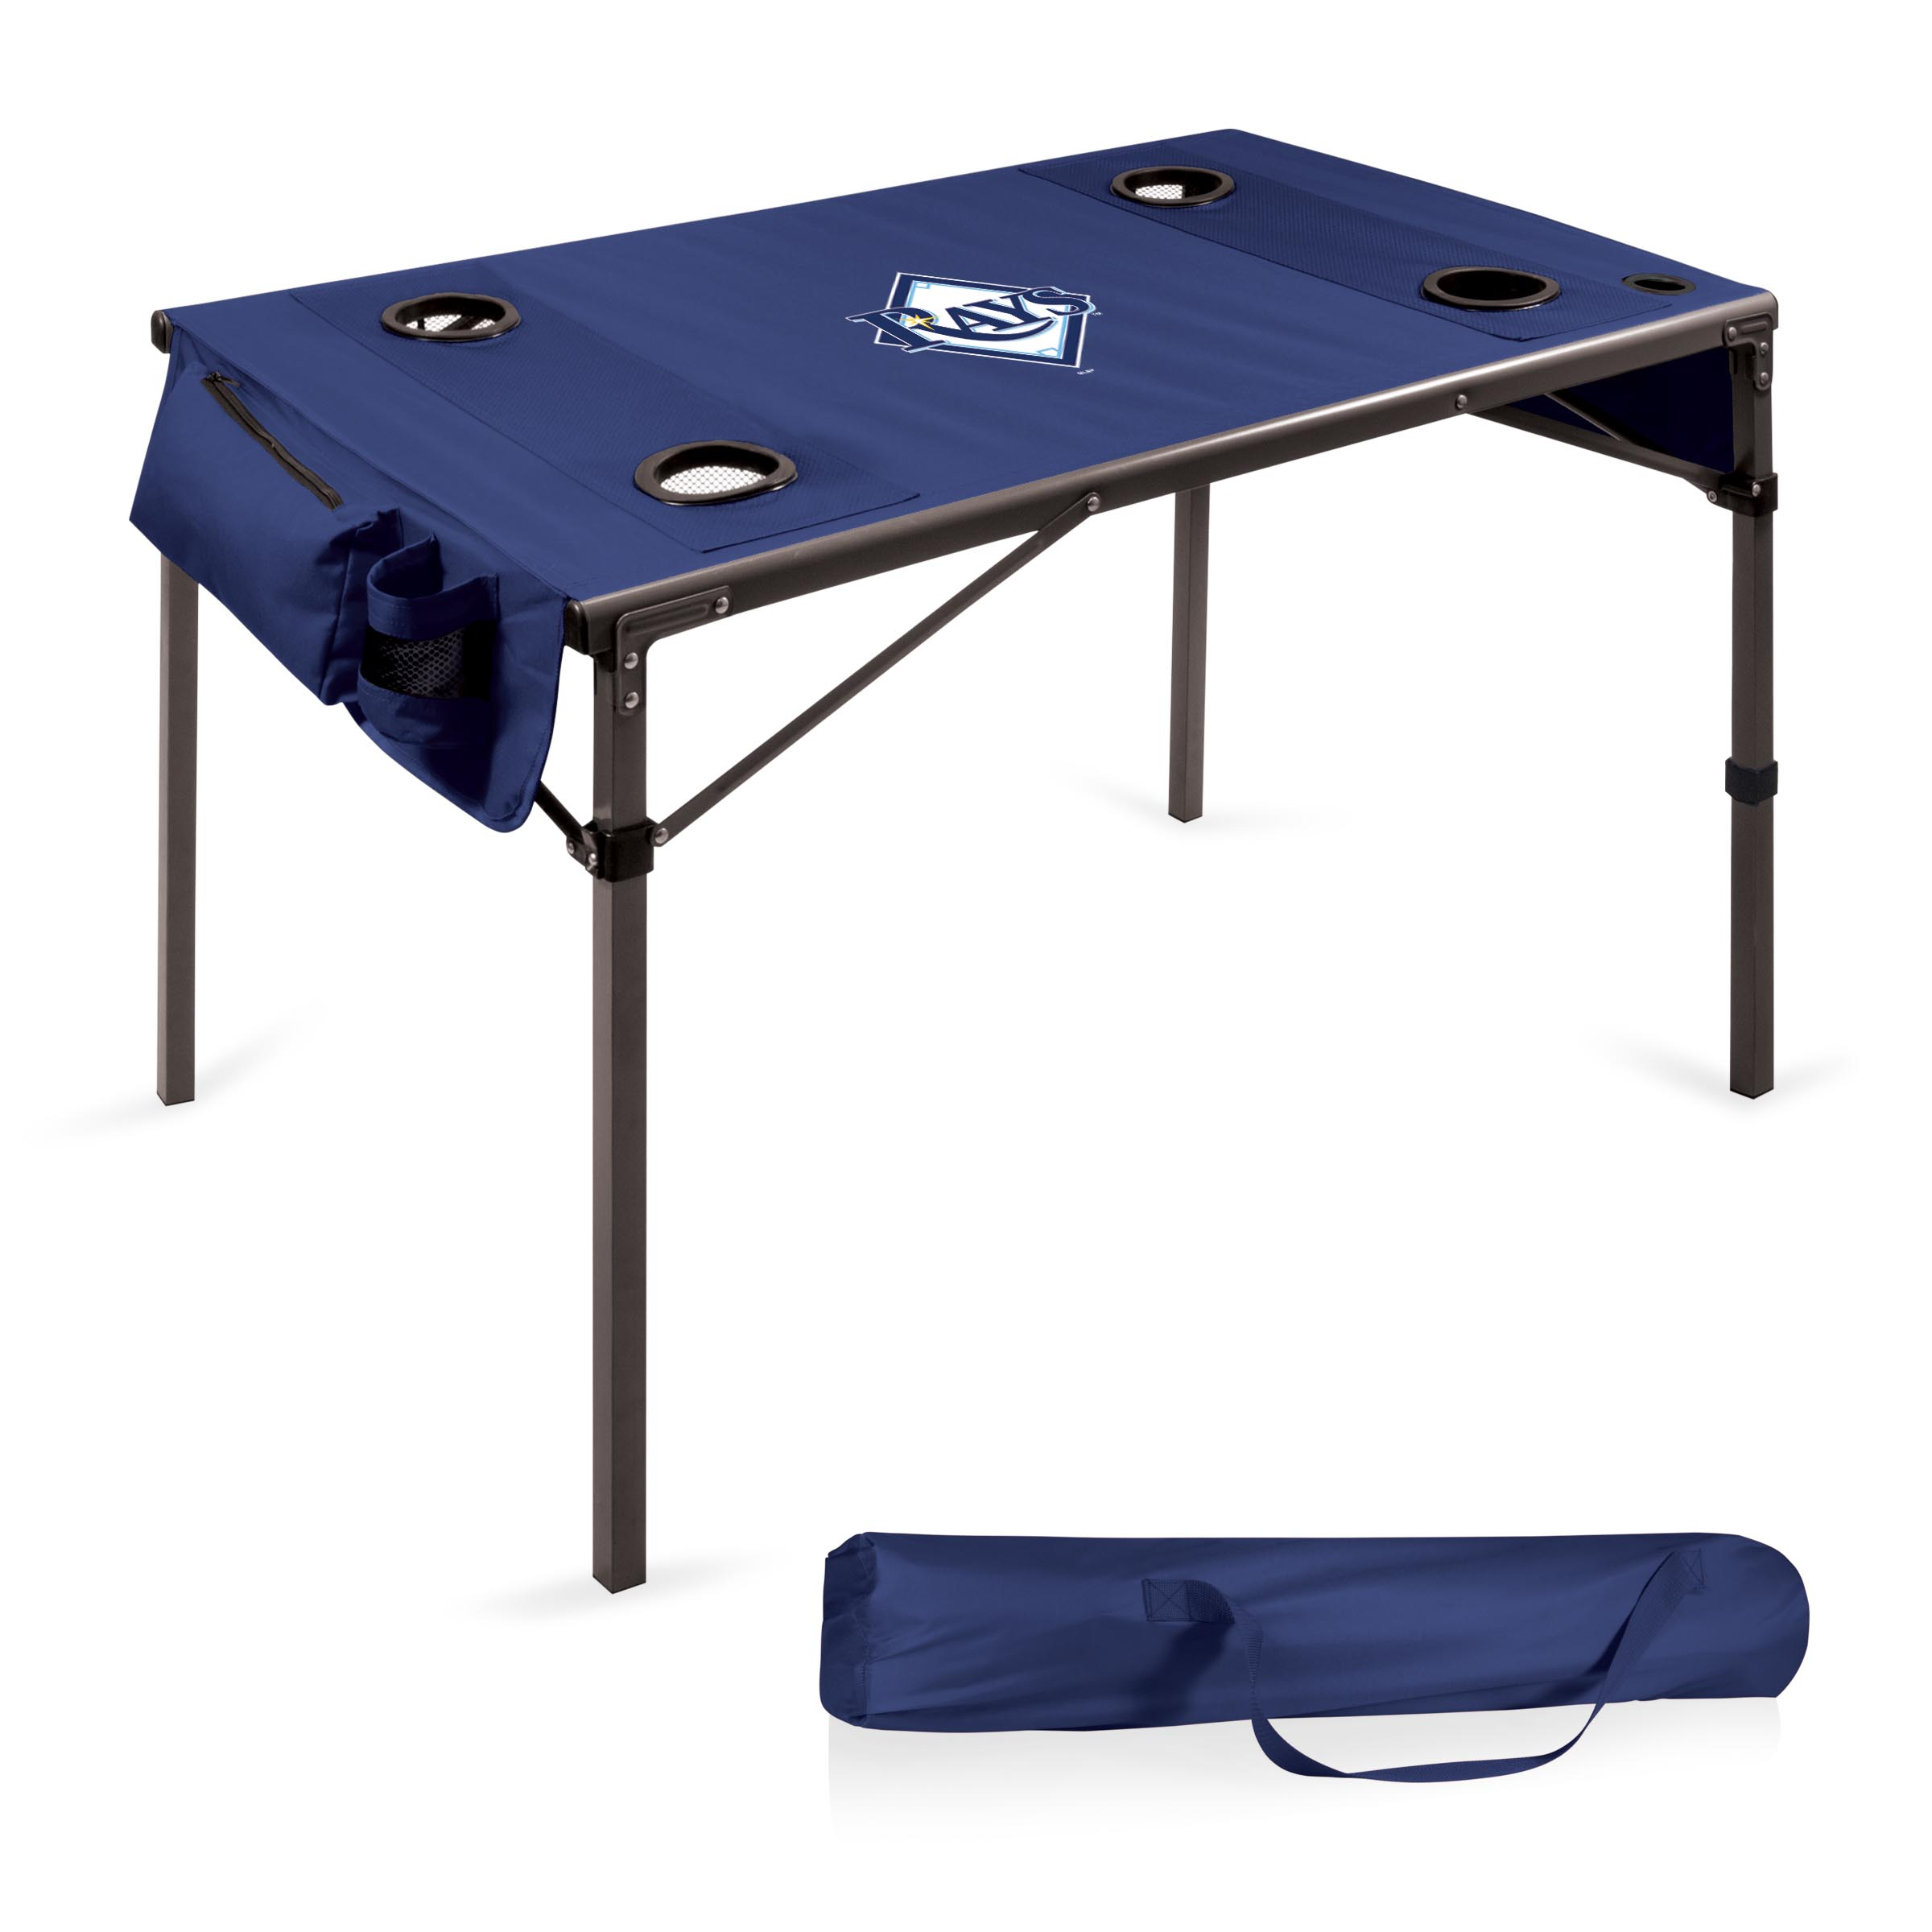 Tampa Bay Rays Portable Folding Travel Table - Navy - No Size